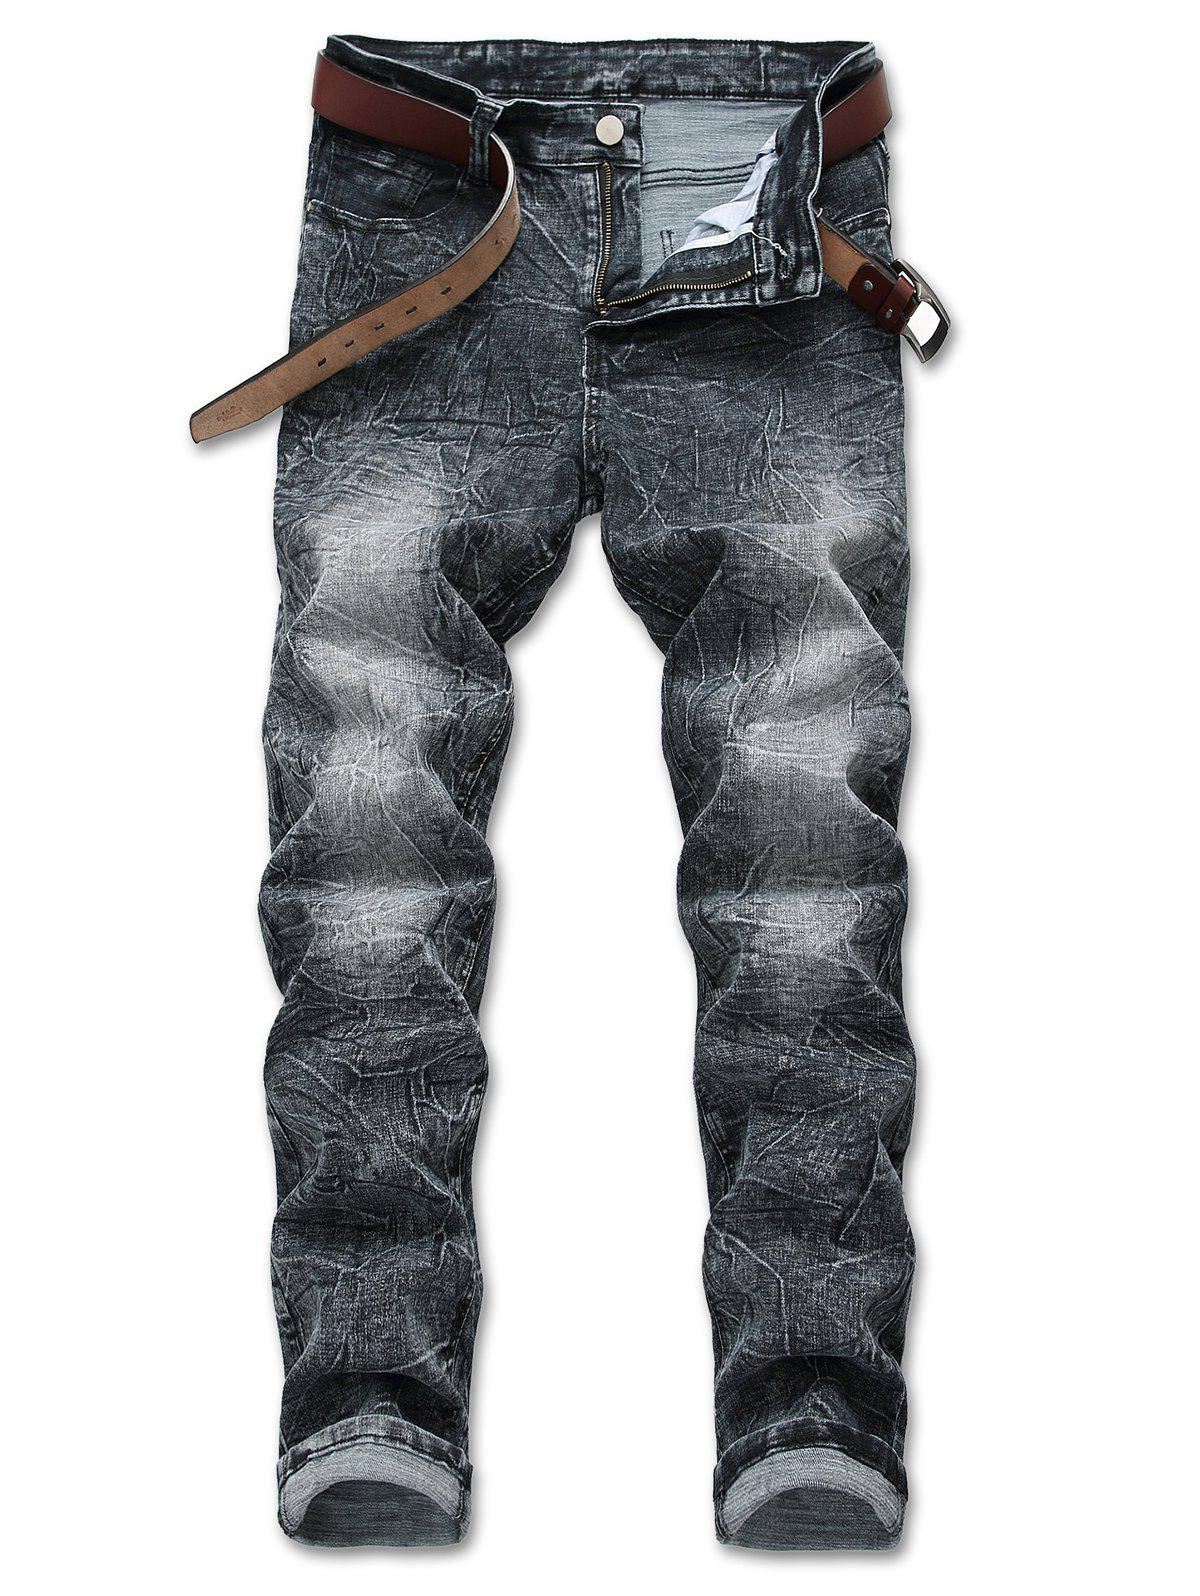 Distressed Faded Zipper Fly Jeans - GRAY 34